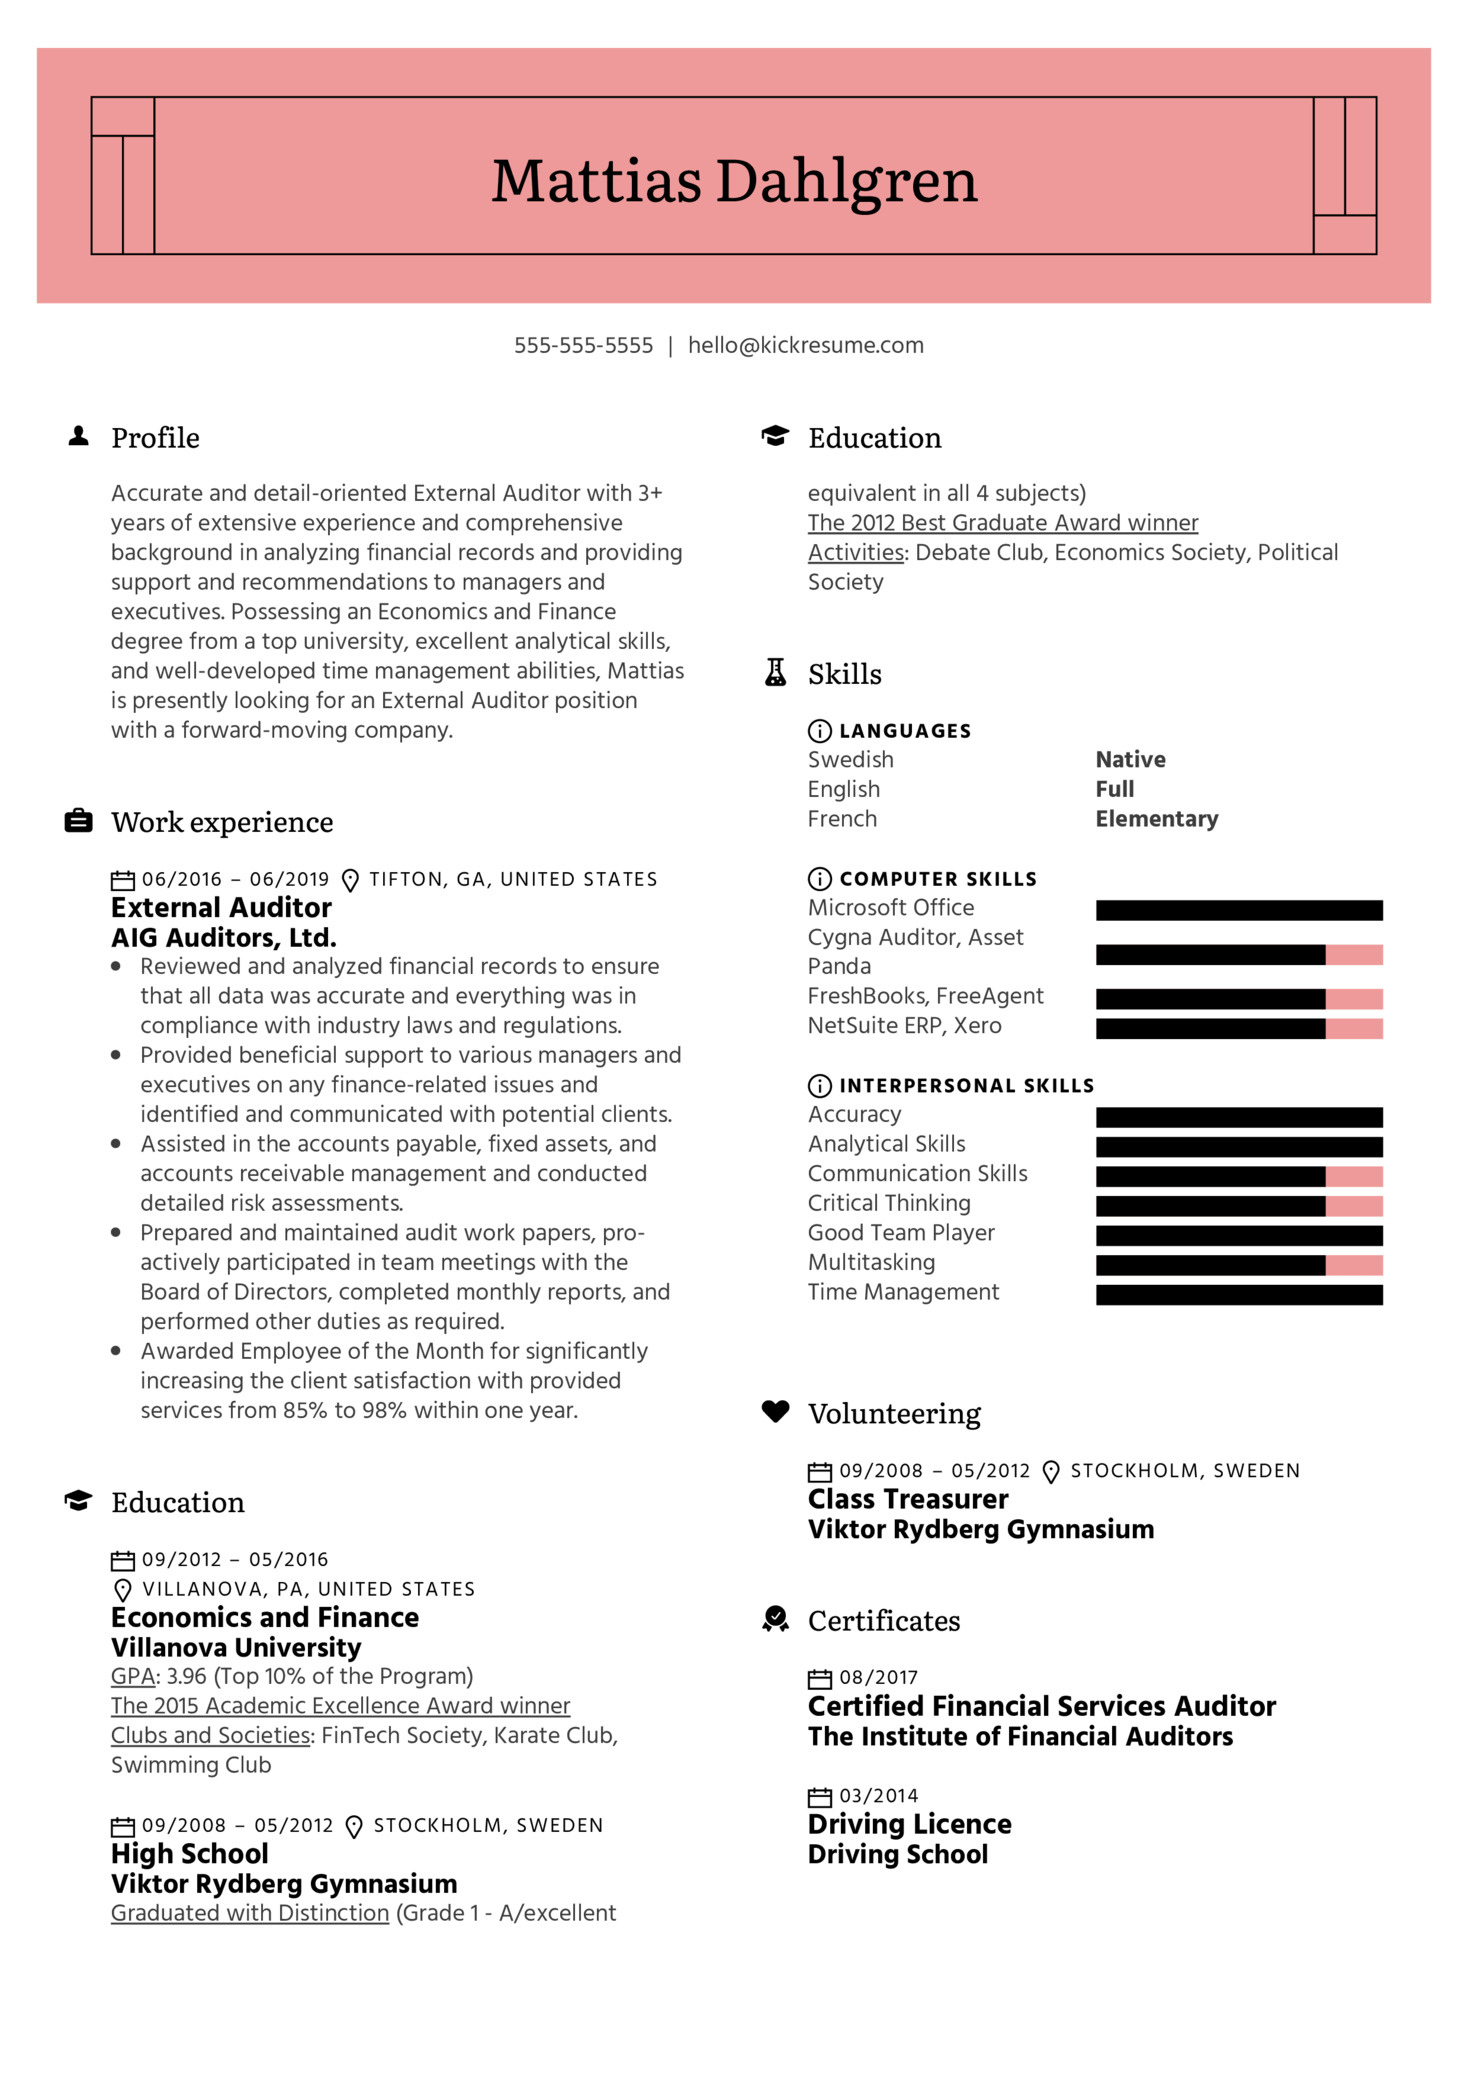 External Auditor Resume Example (Part 1)